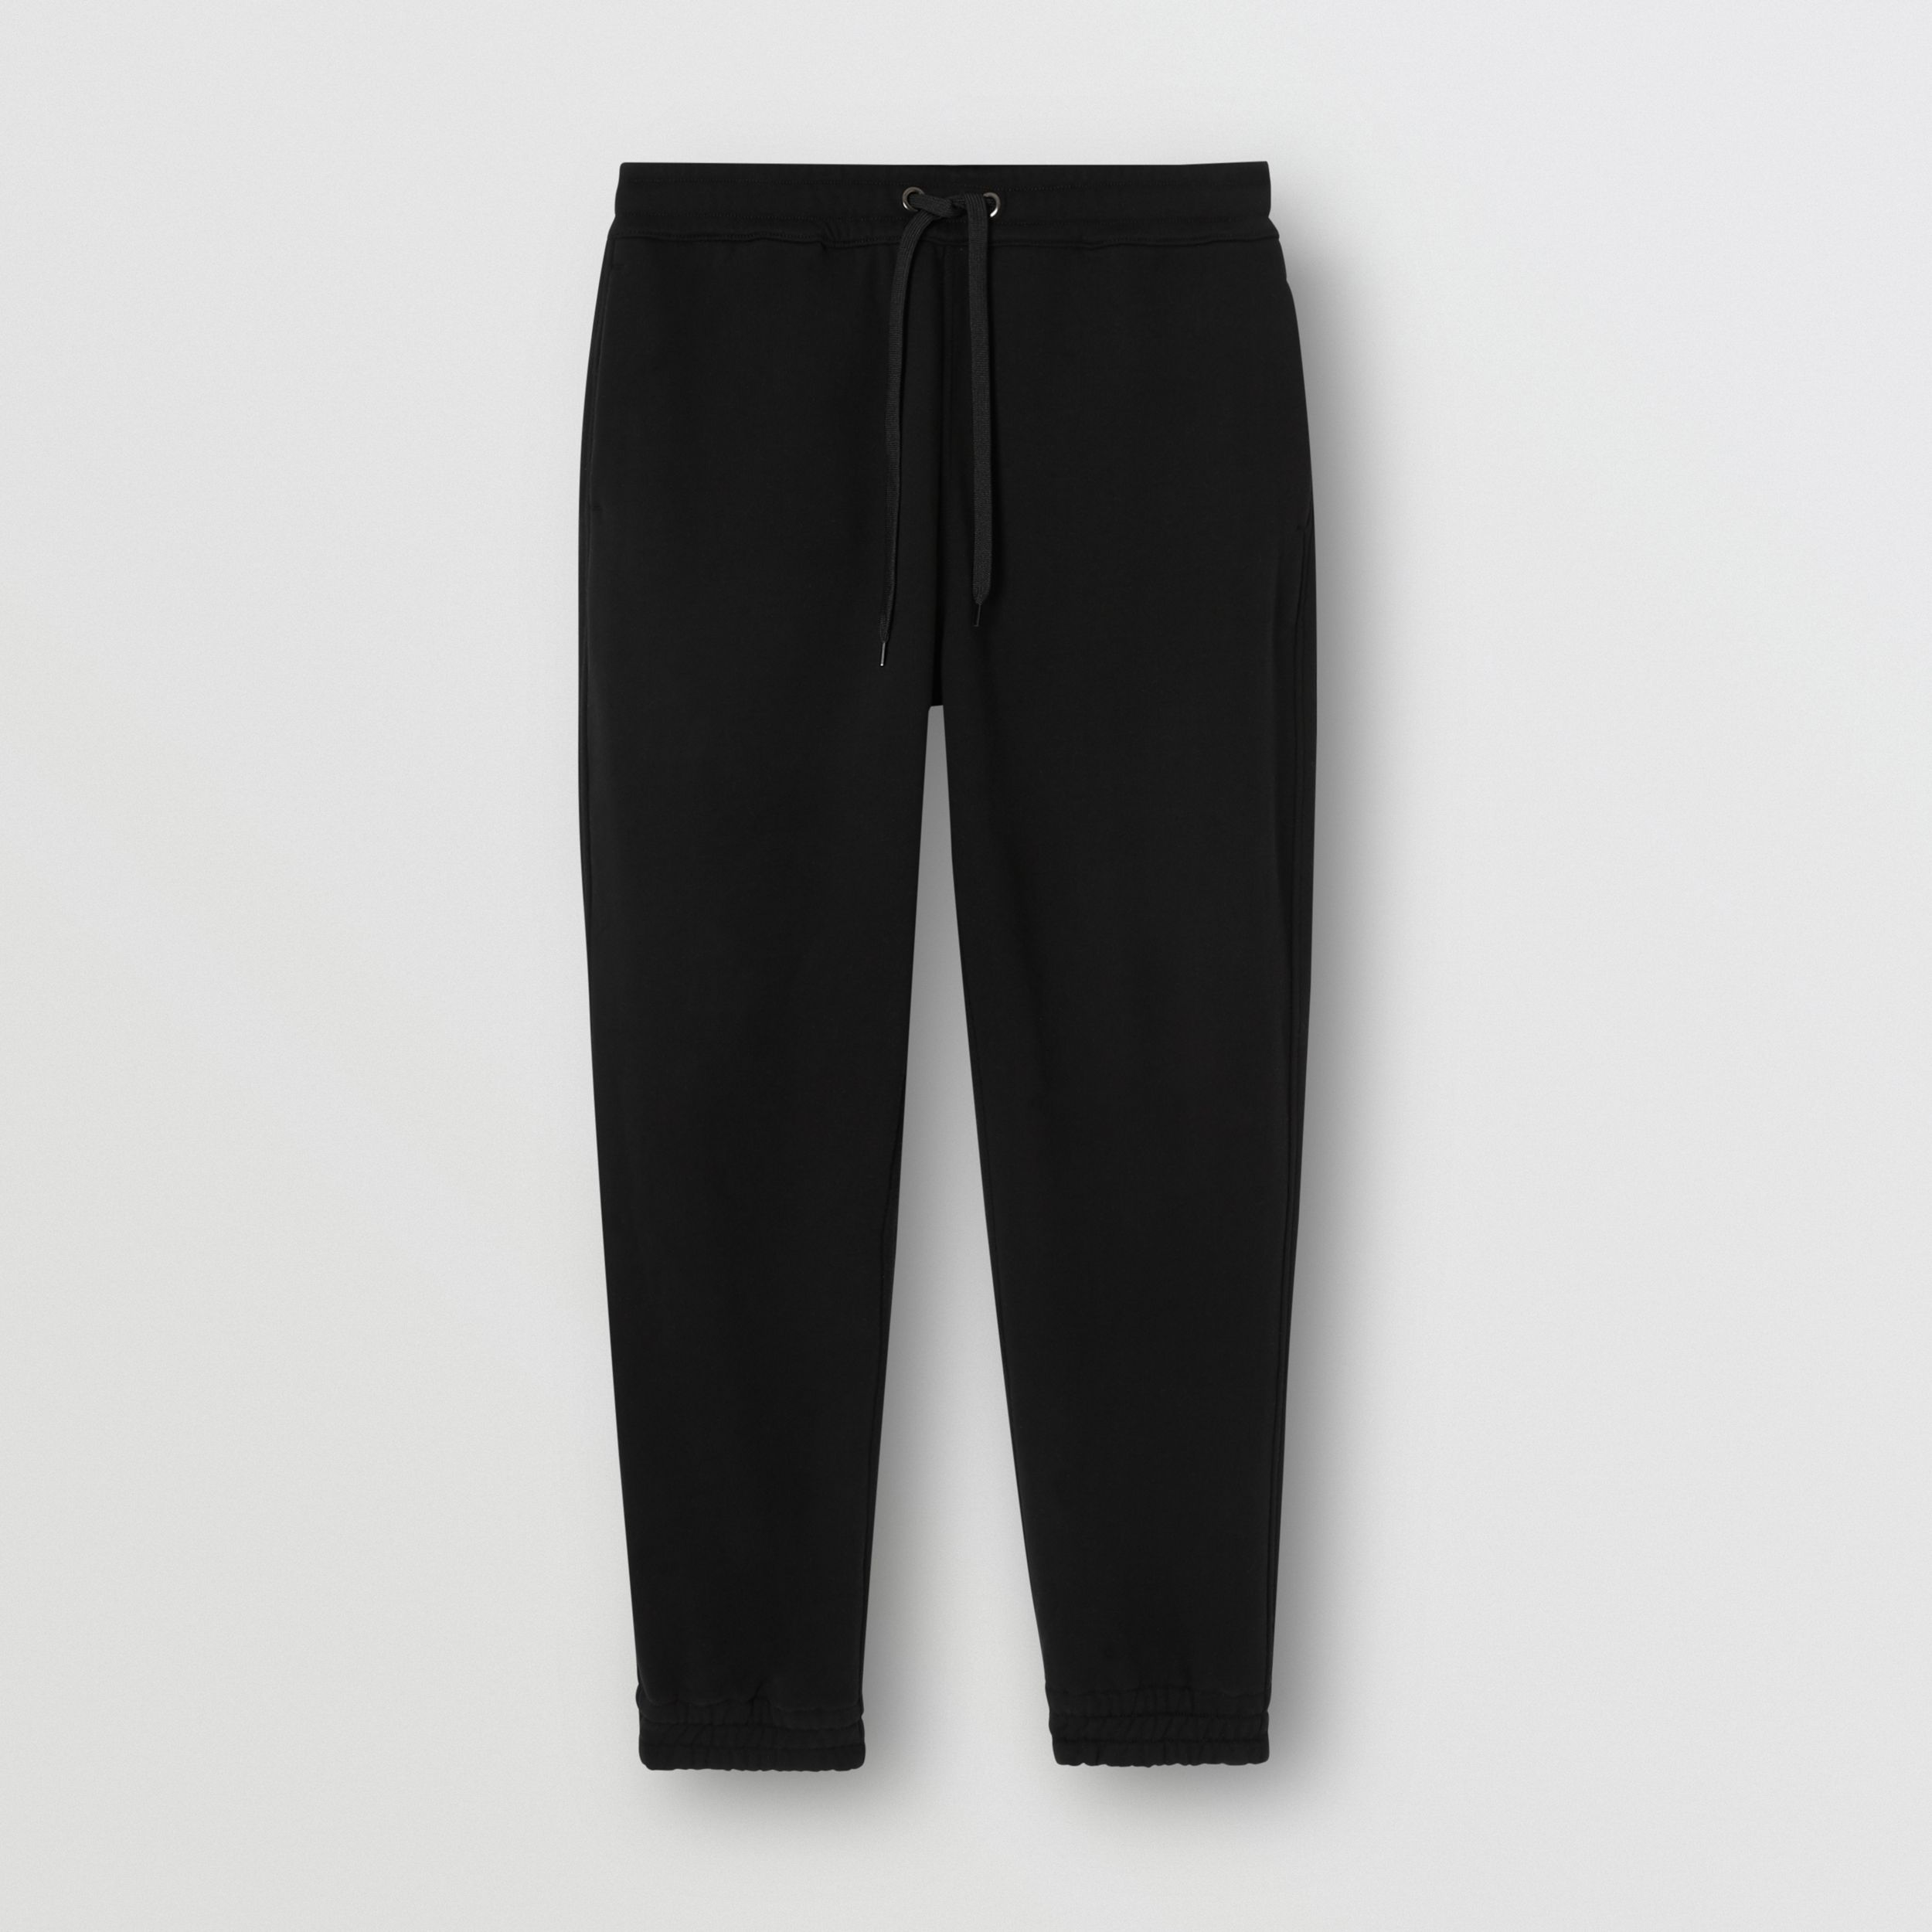 Logo Appliqué Cotton Trackpants in Black - Men | Burberry - 4